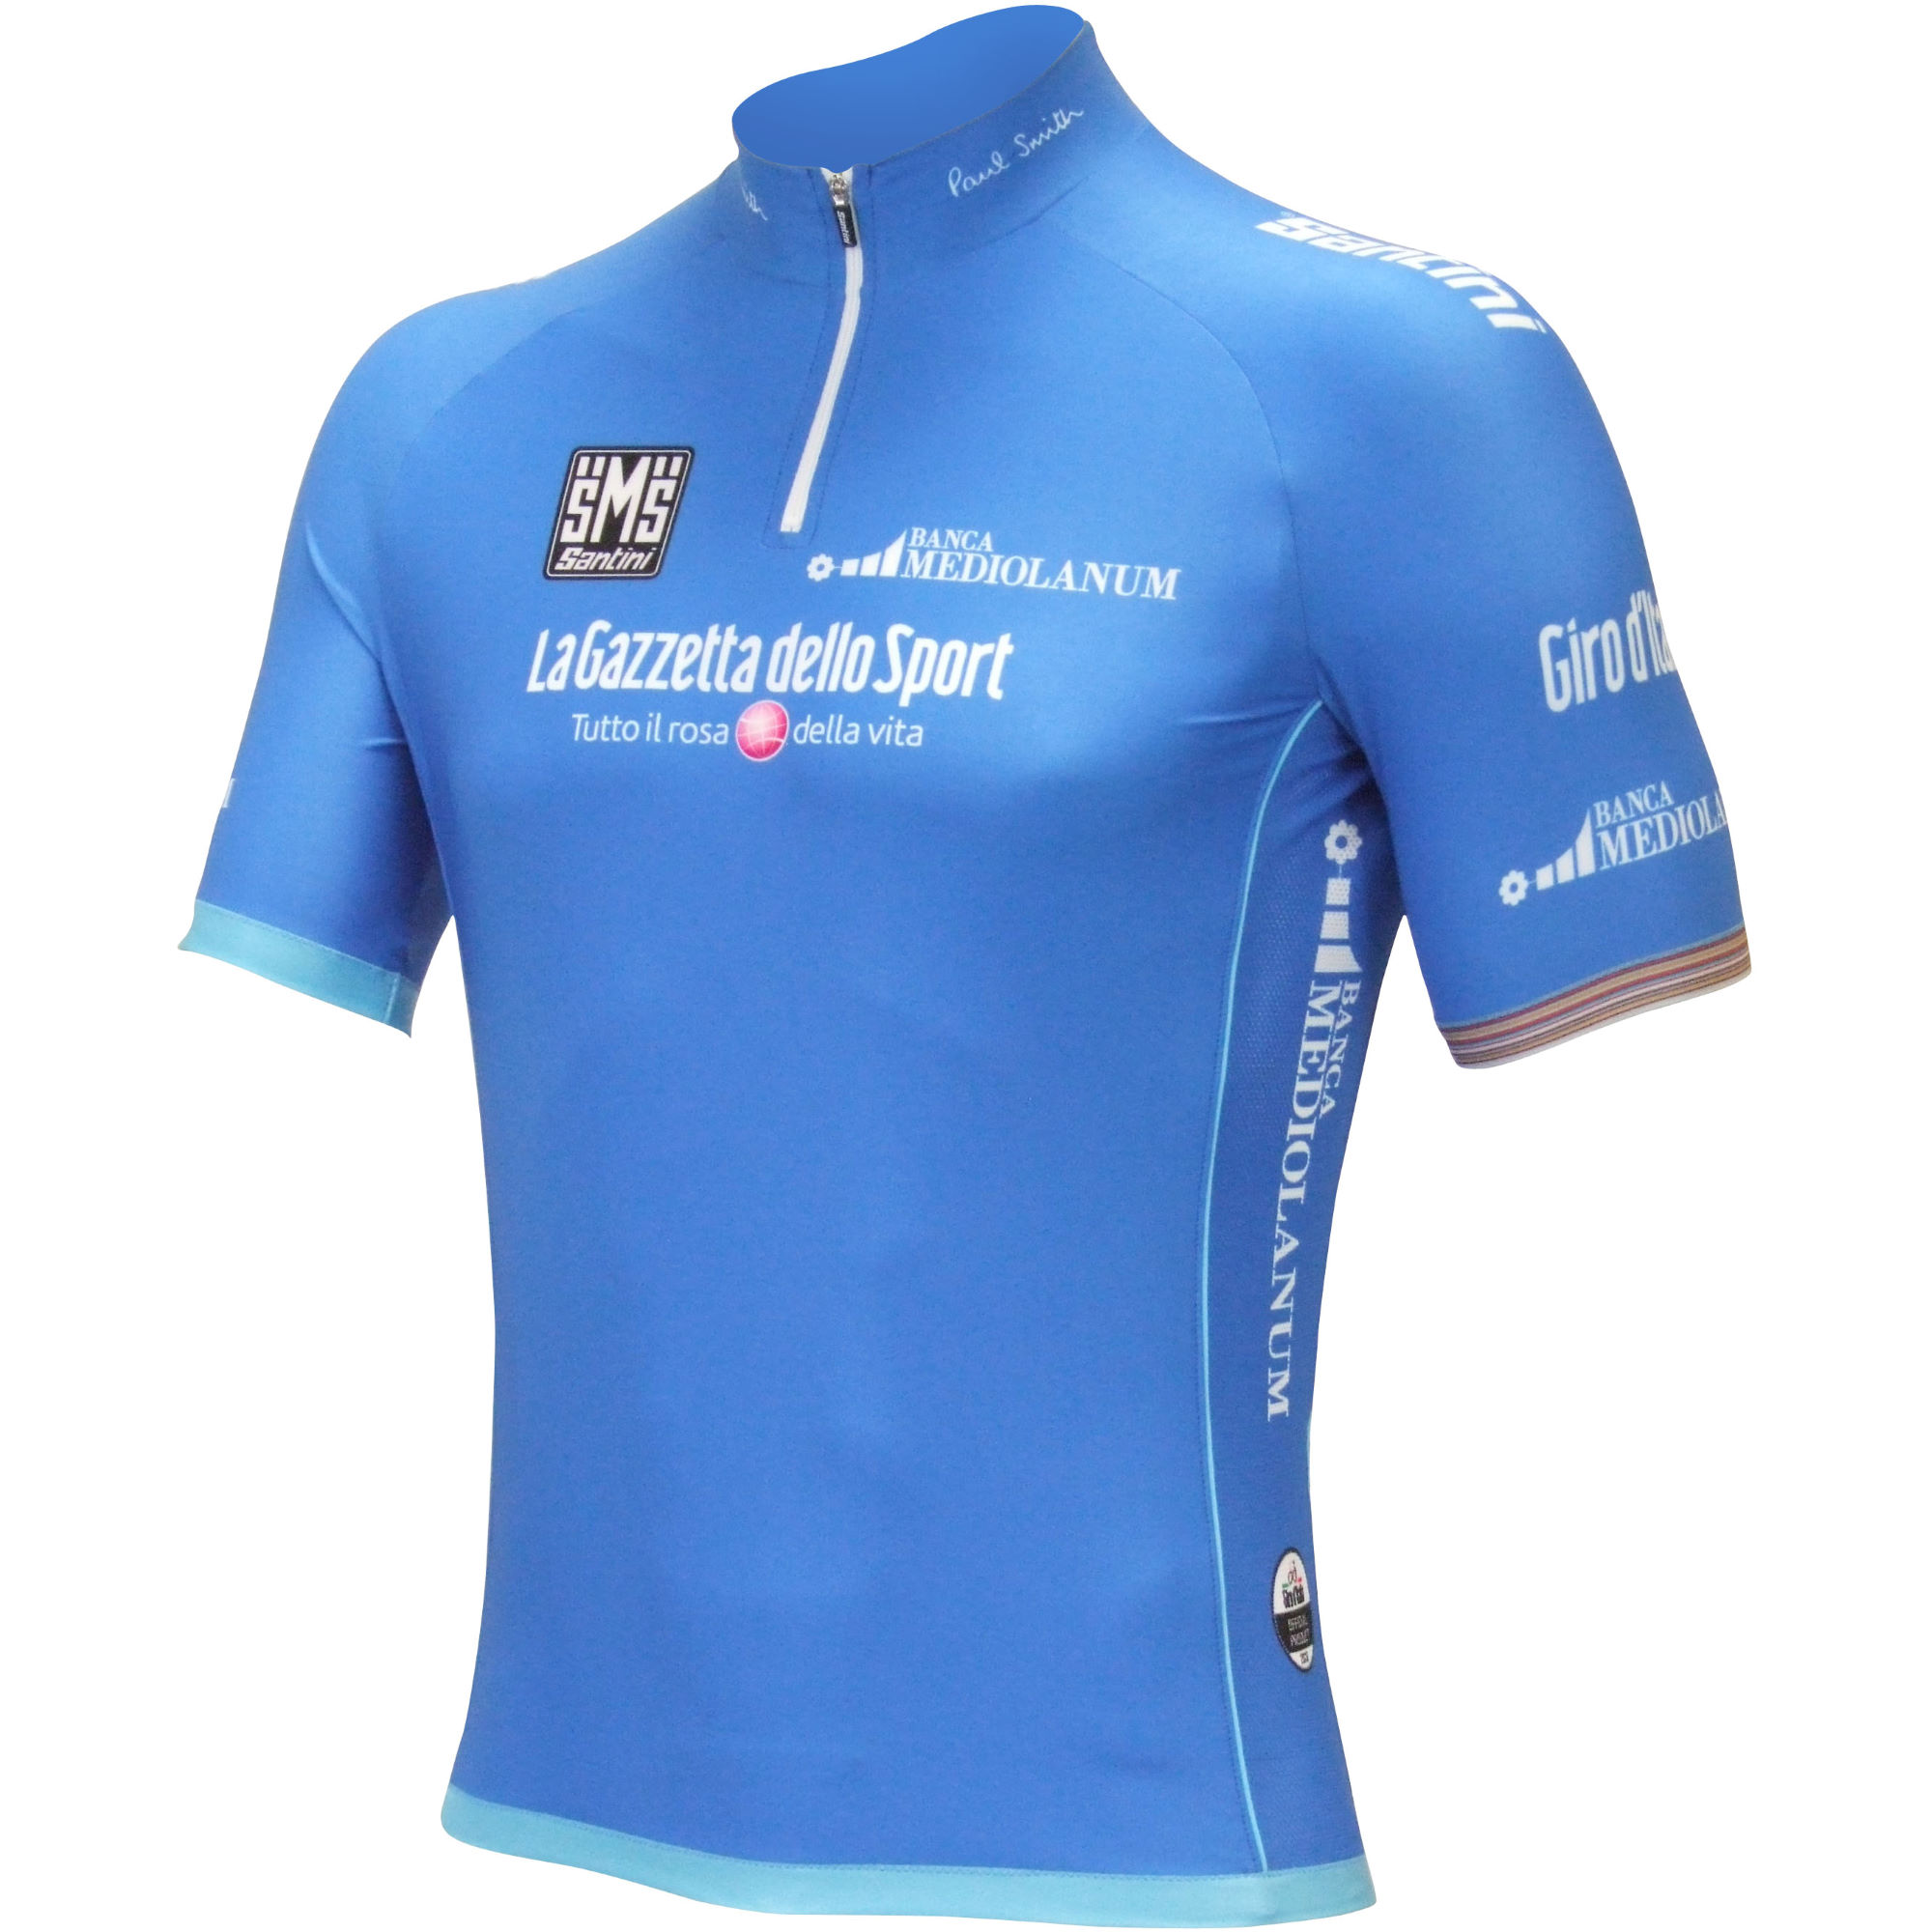 maillots des quipes pro santini giro d italia king of the mountains jersey 2013 wiggle. Black Bedroom Furniture Sets. Home Design Ideas